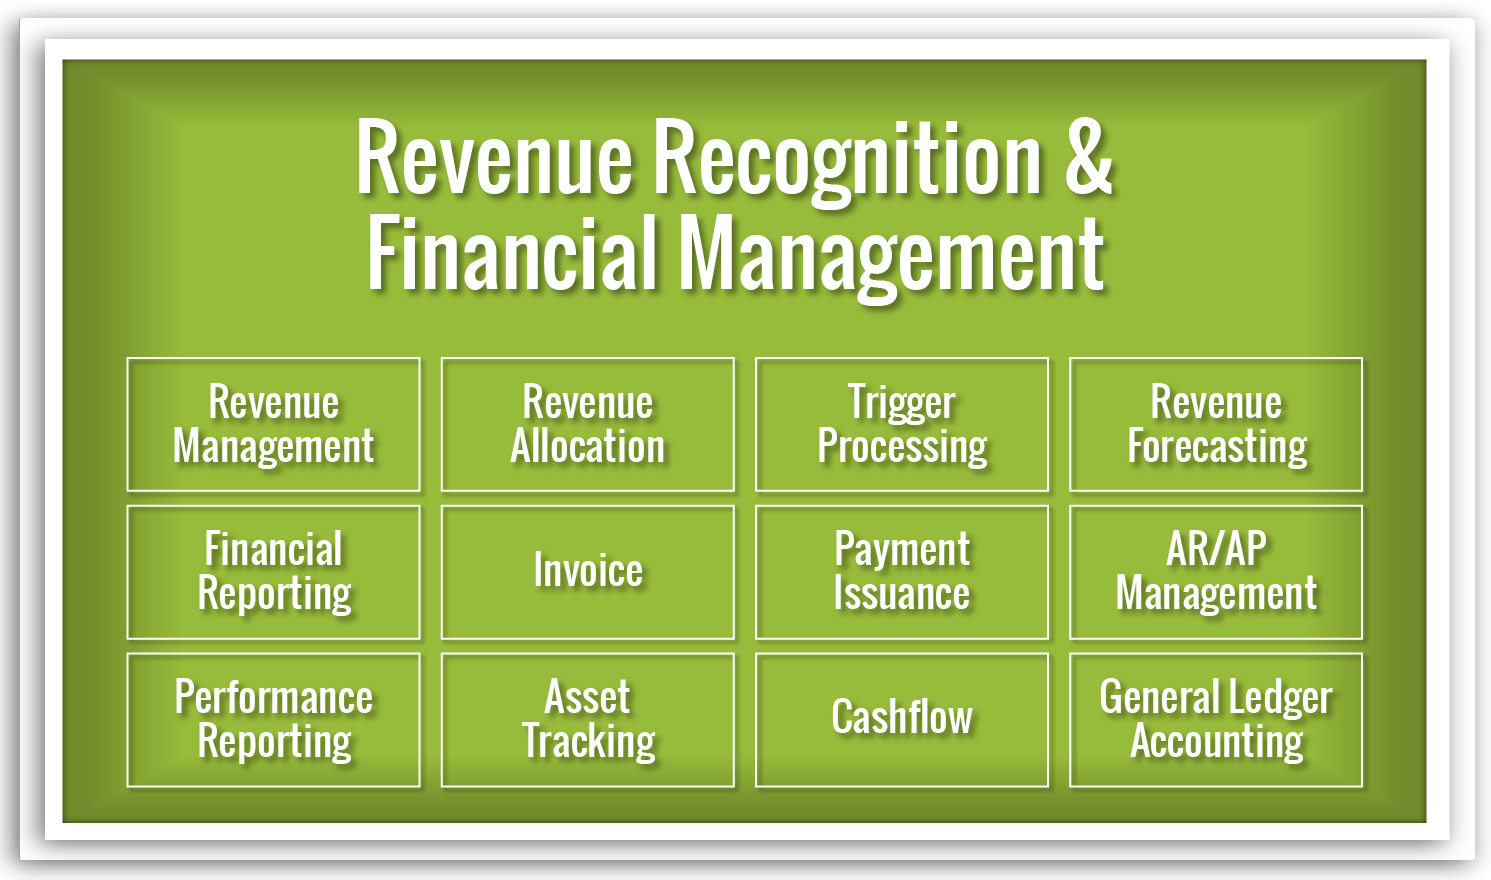 Revenue Recognition and Financial Management System